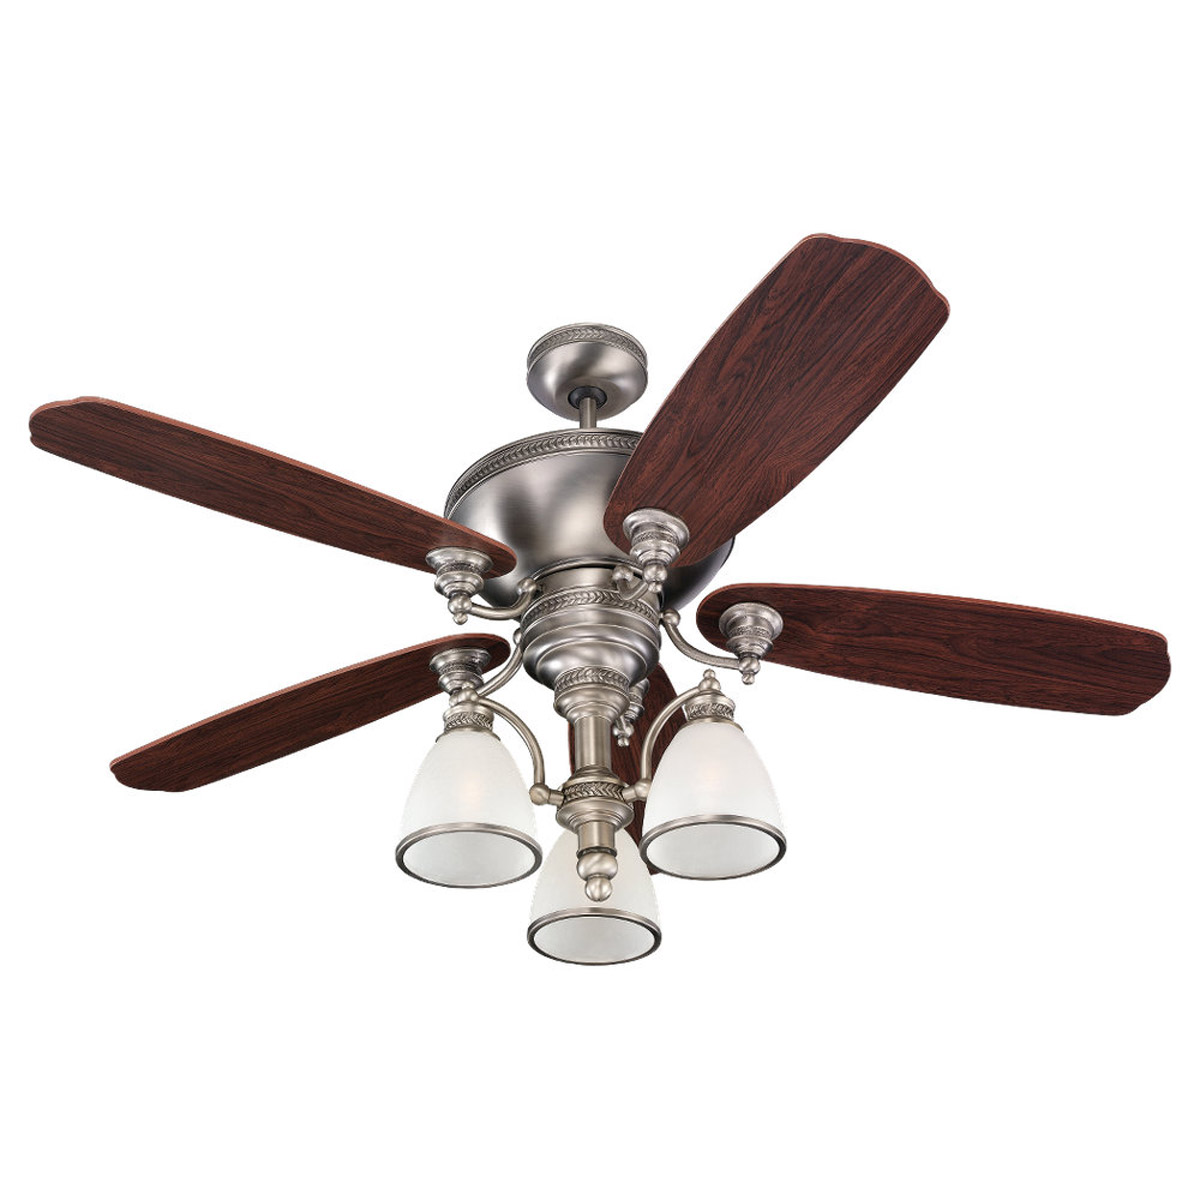 Sea Gull Lighting Laurel Leaf 3 Light 52in Ceiling Fan in Antique Brushed Nickel 15068B-965